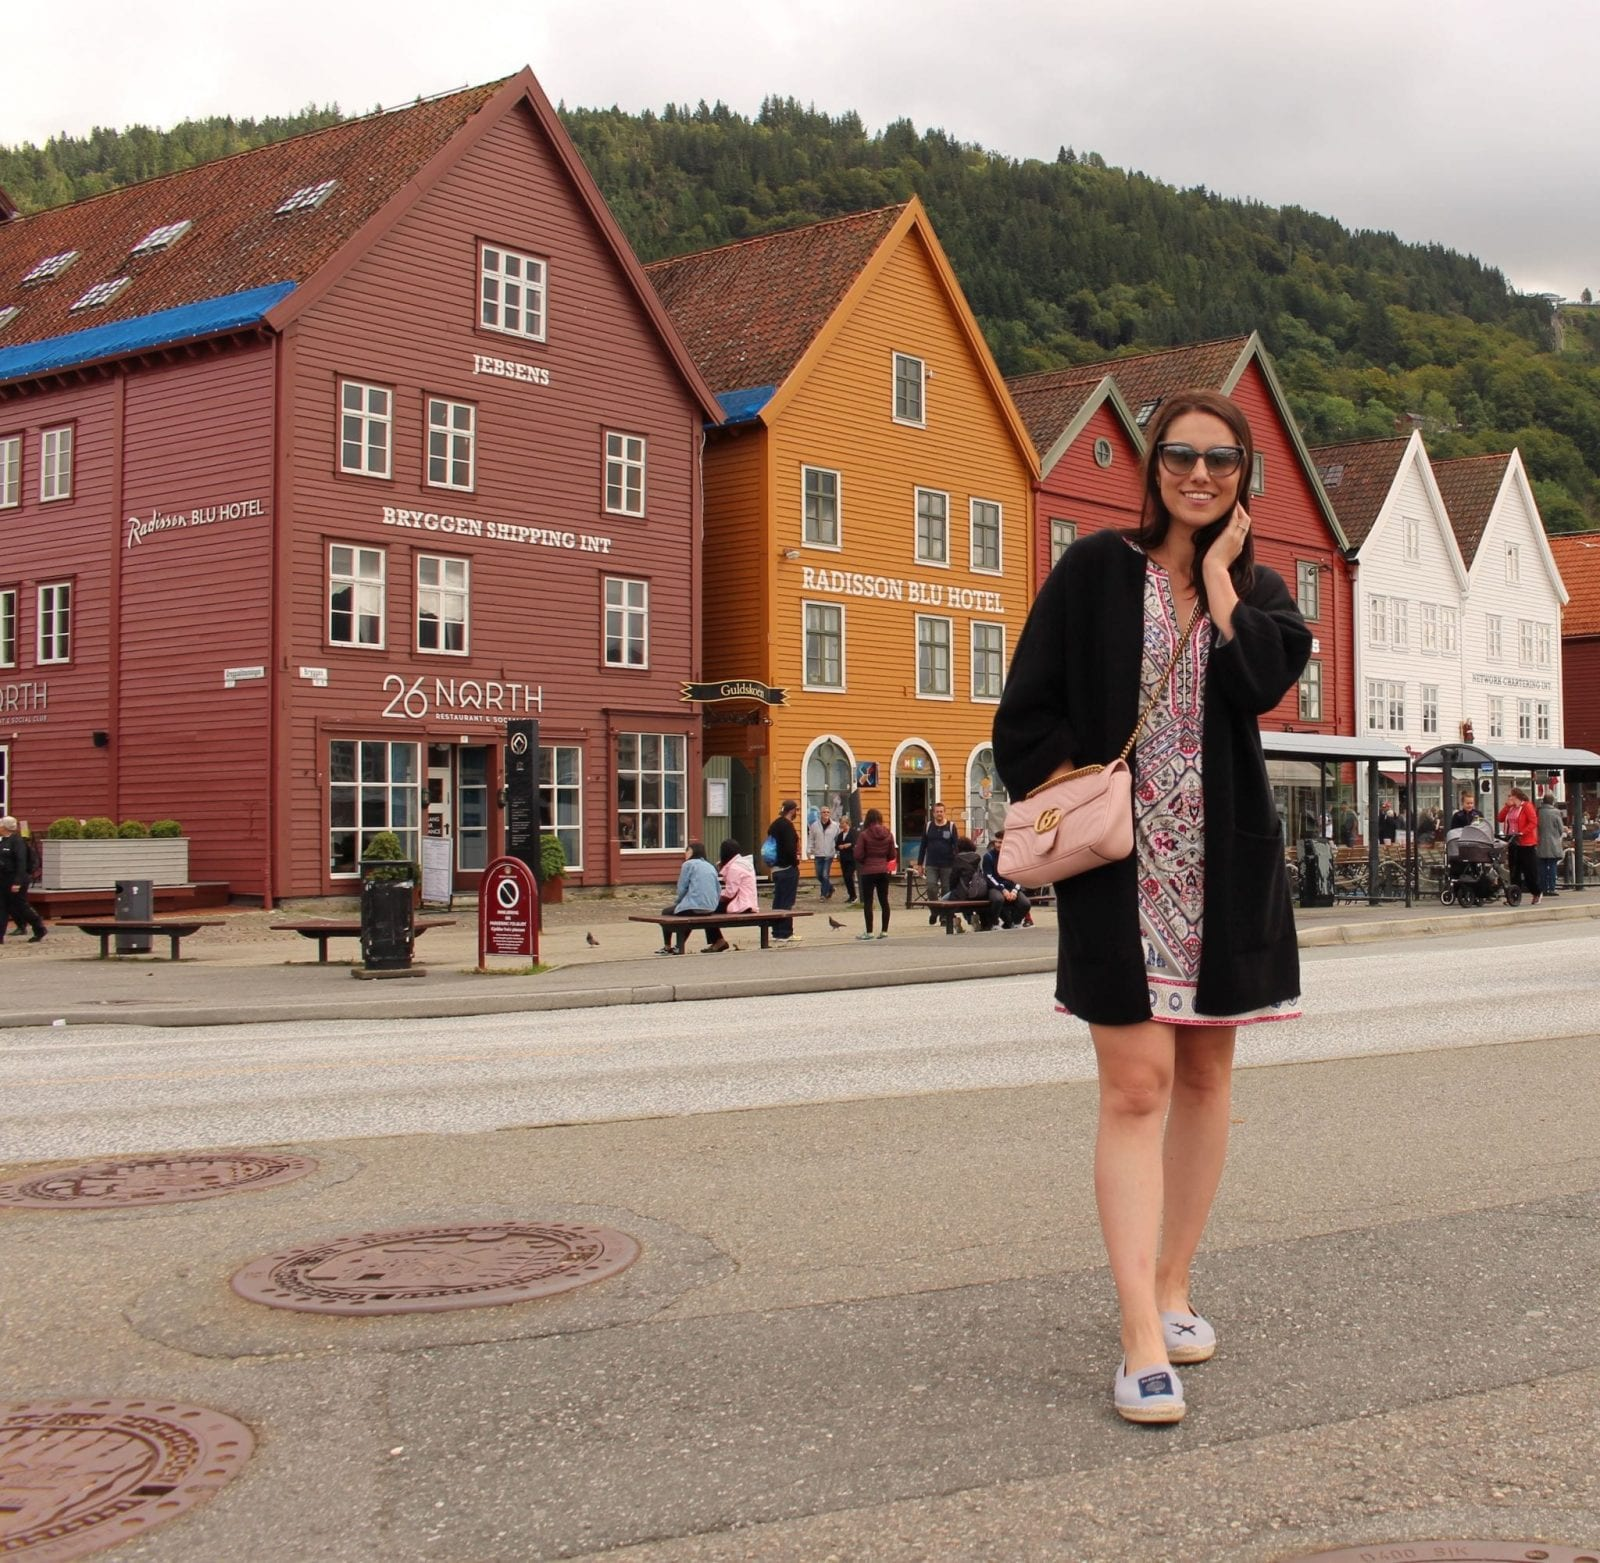 I'm enjoying the Bryygen view in Bergen Norway, while rocking a Hale Bob dress.